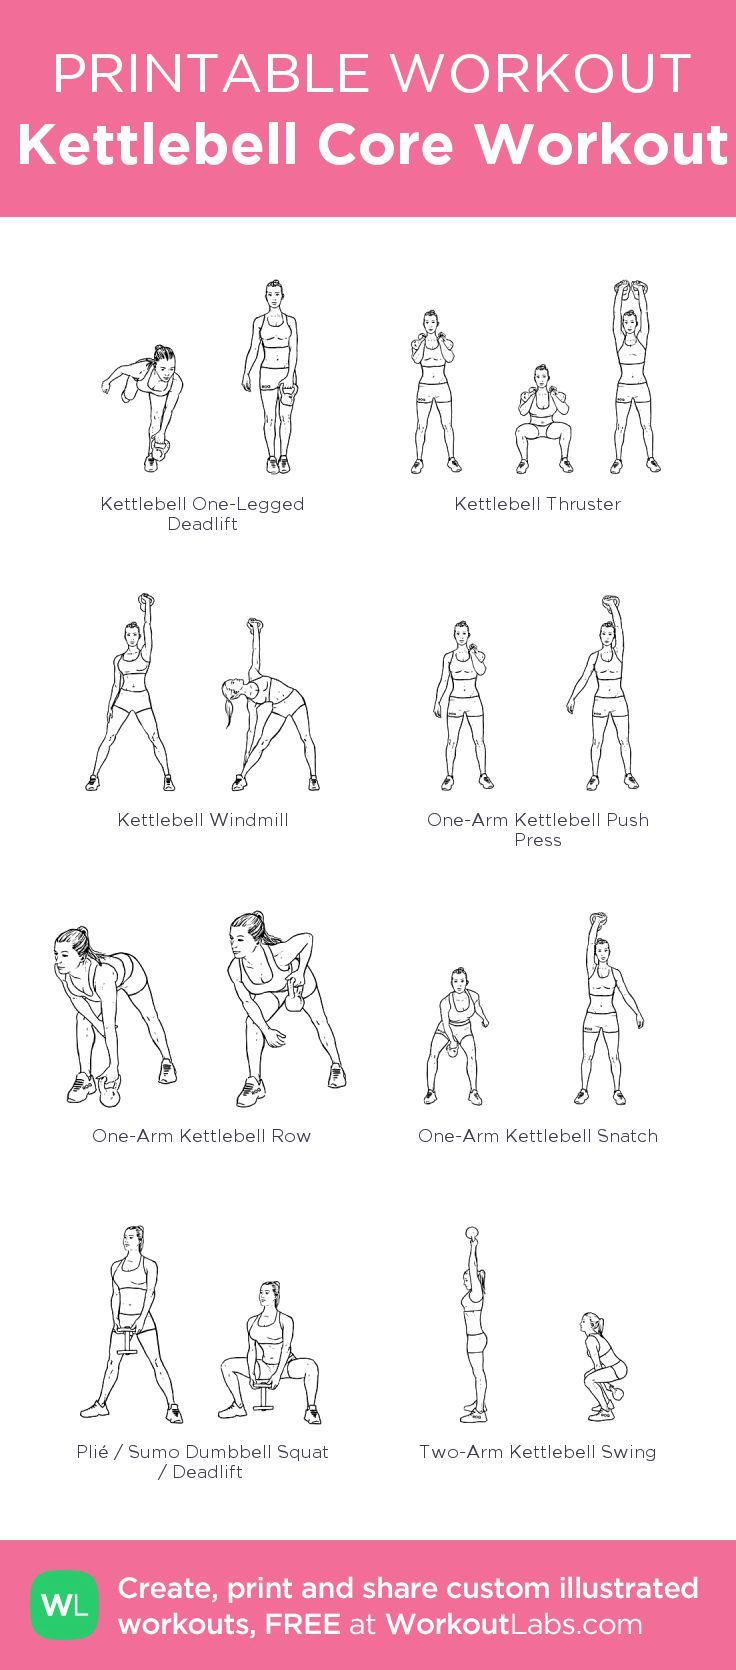 This is a photo of Handy Free Printable Workouts